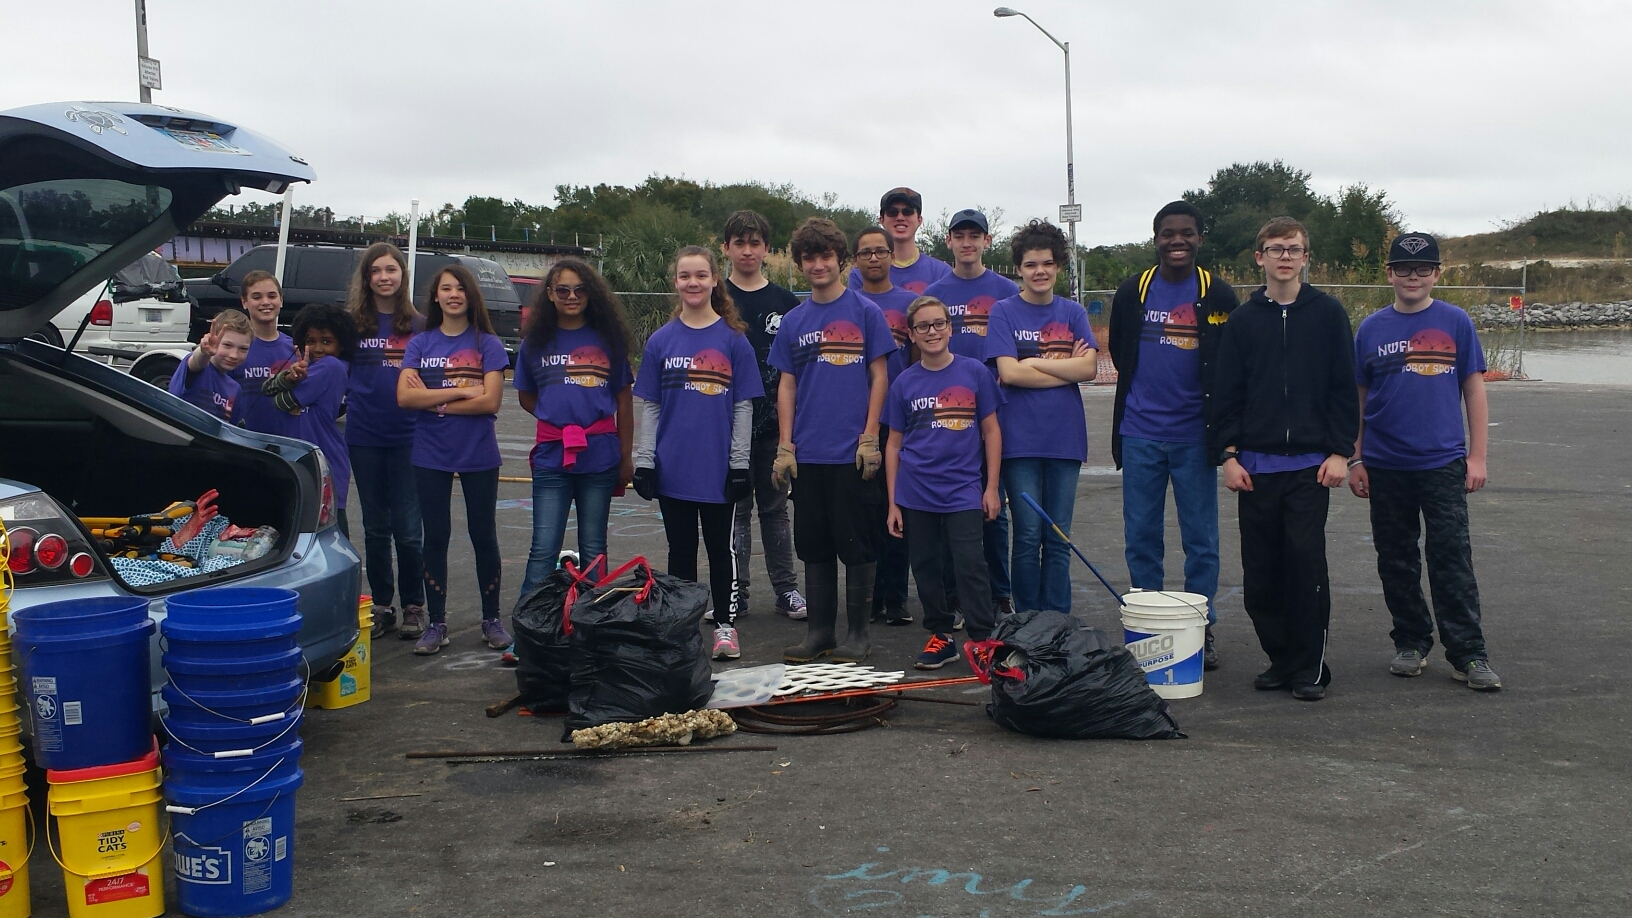 - Thanks to the 19 volunteers from the NWFL Robot Spot Robotics team picking up 83 lbs at Graffiti Bridge